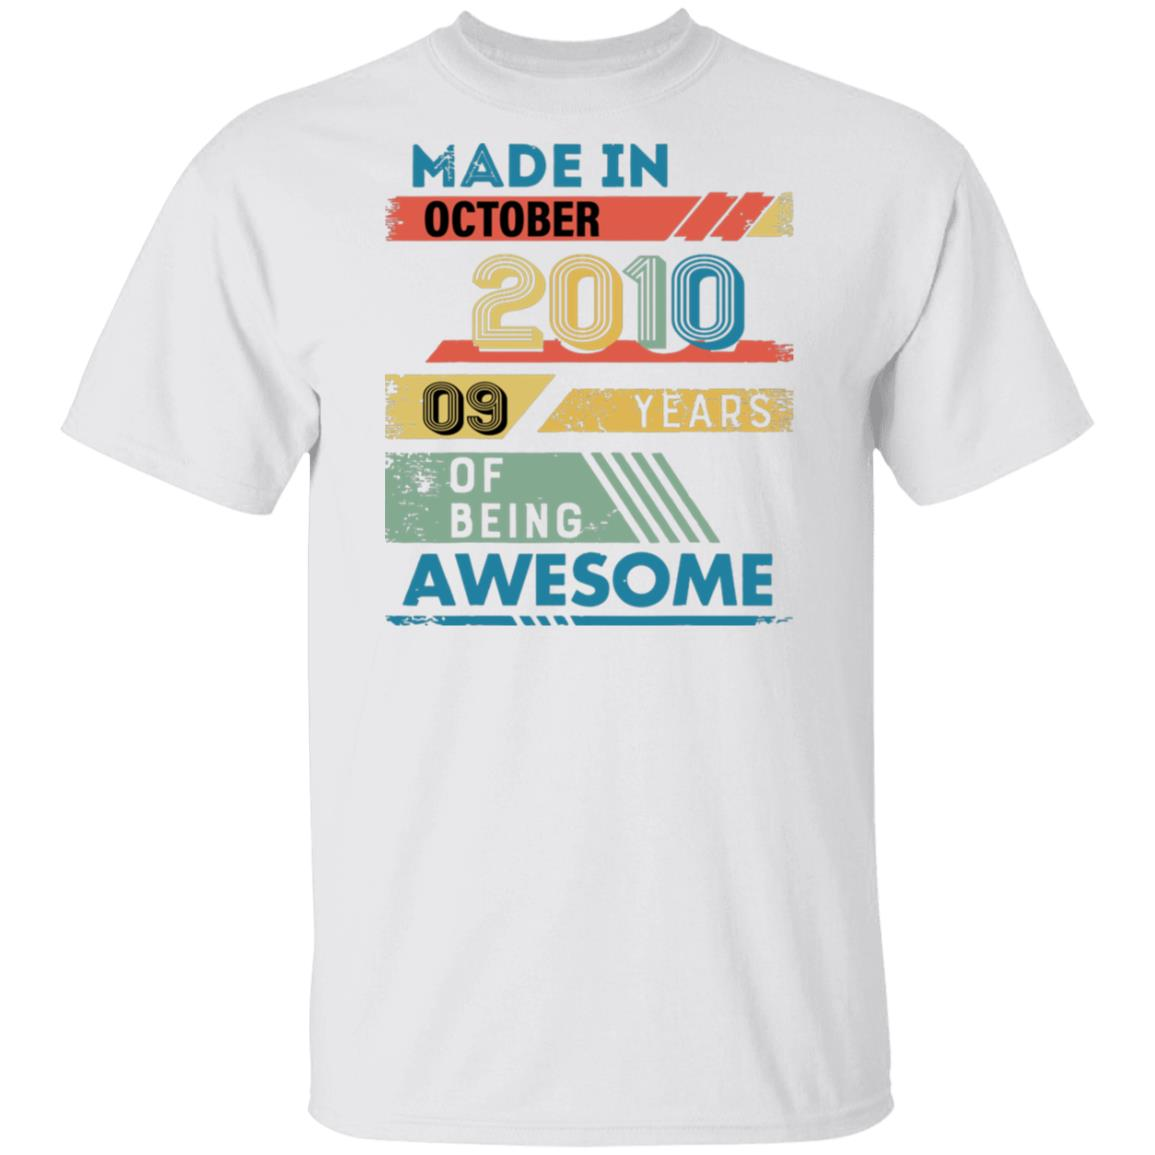 Made in October 2010 Tshirt